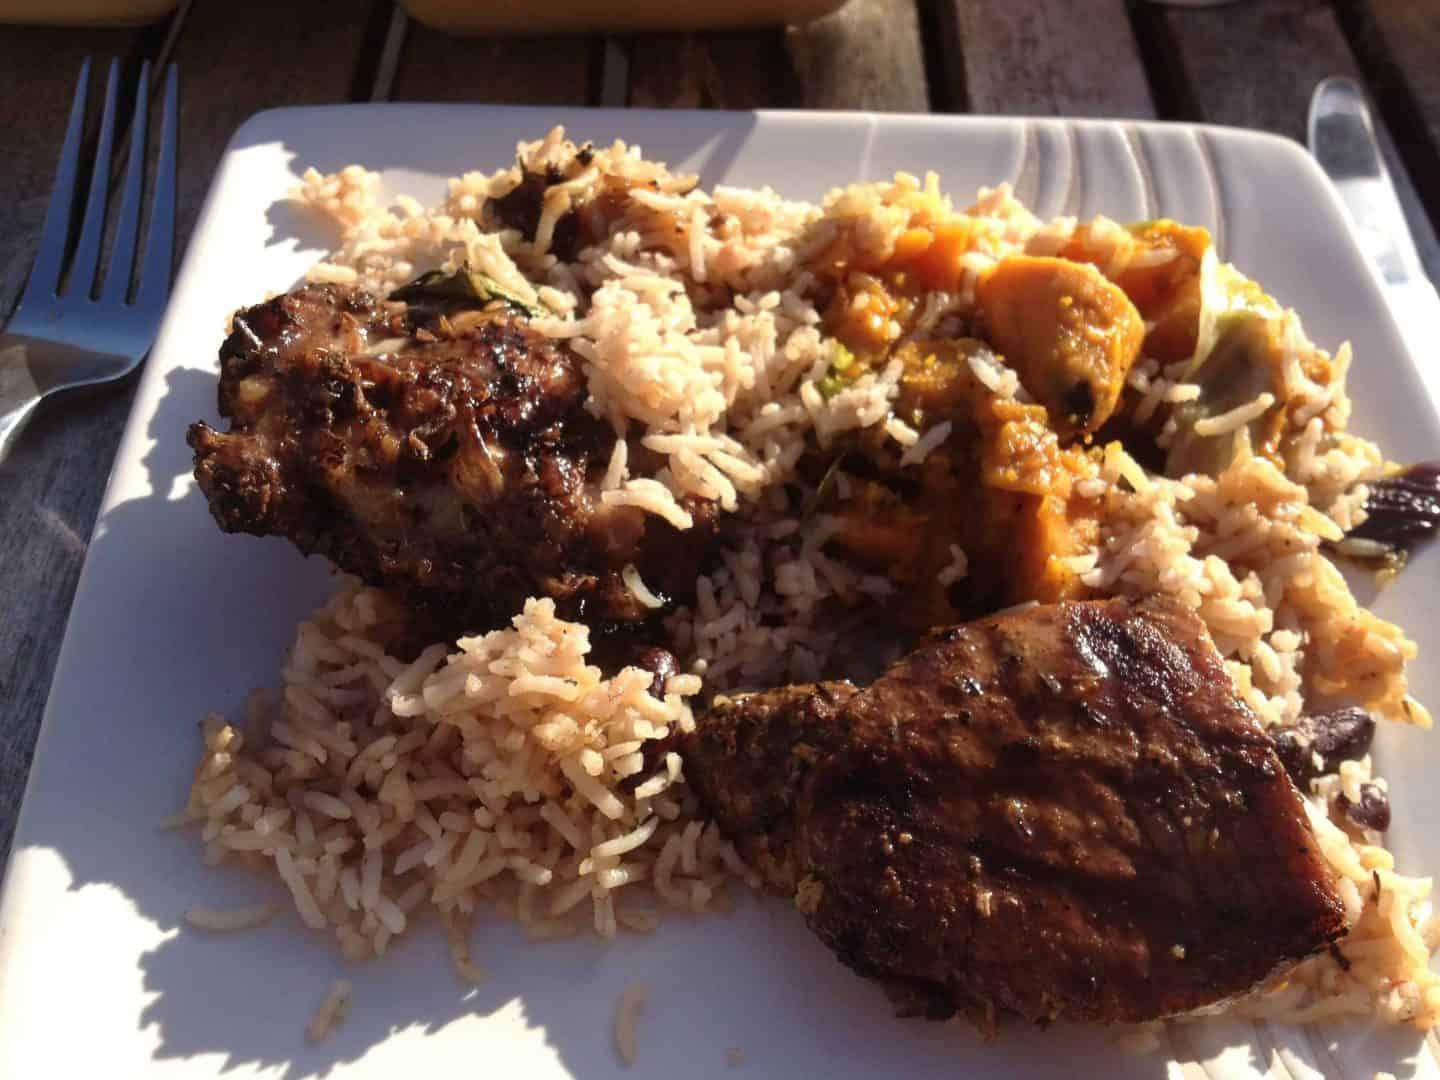 A taste of sunshine from Monty's Caribbean Kitchen, Barnstaple